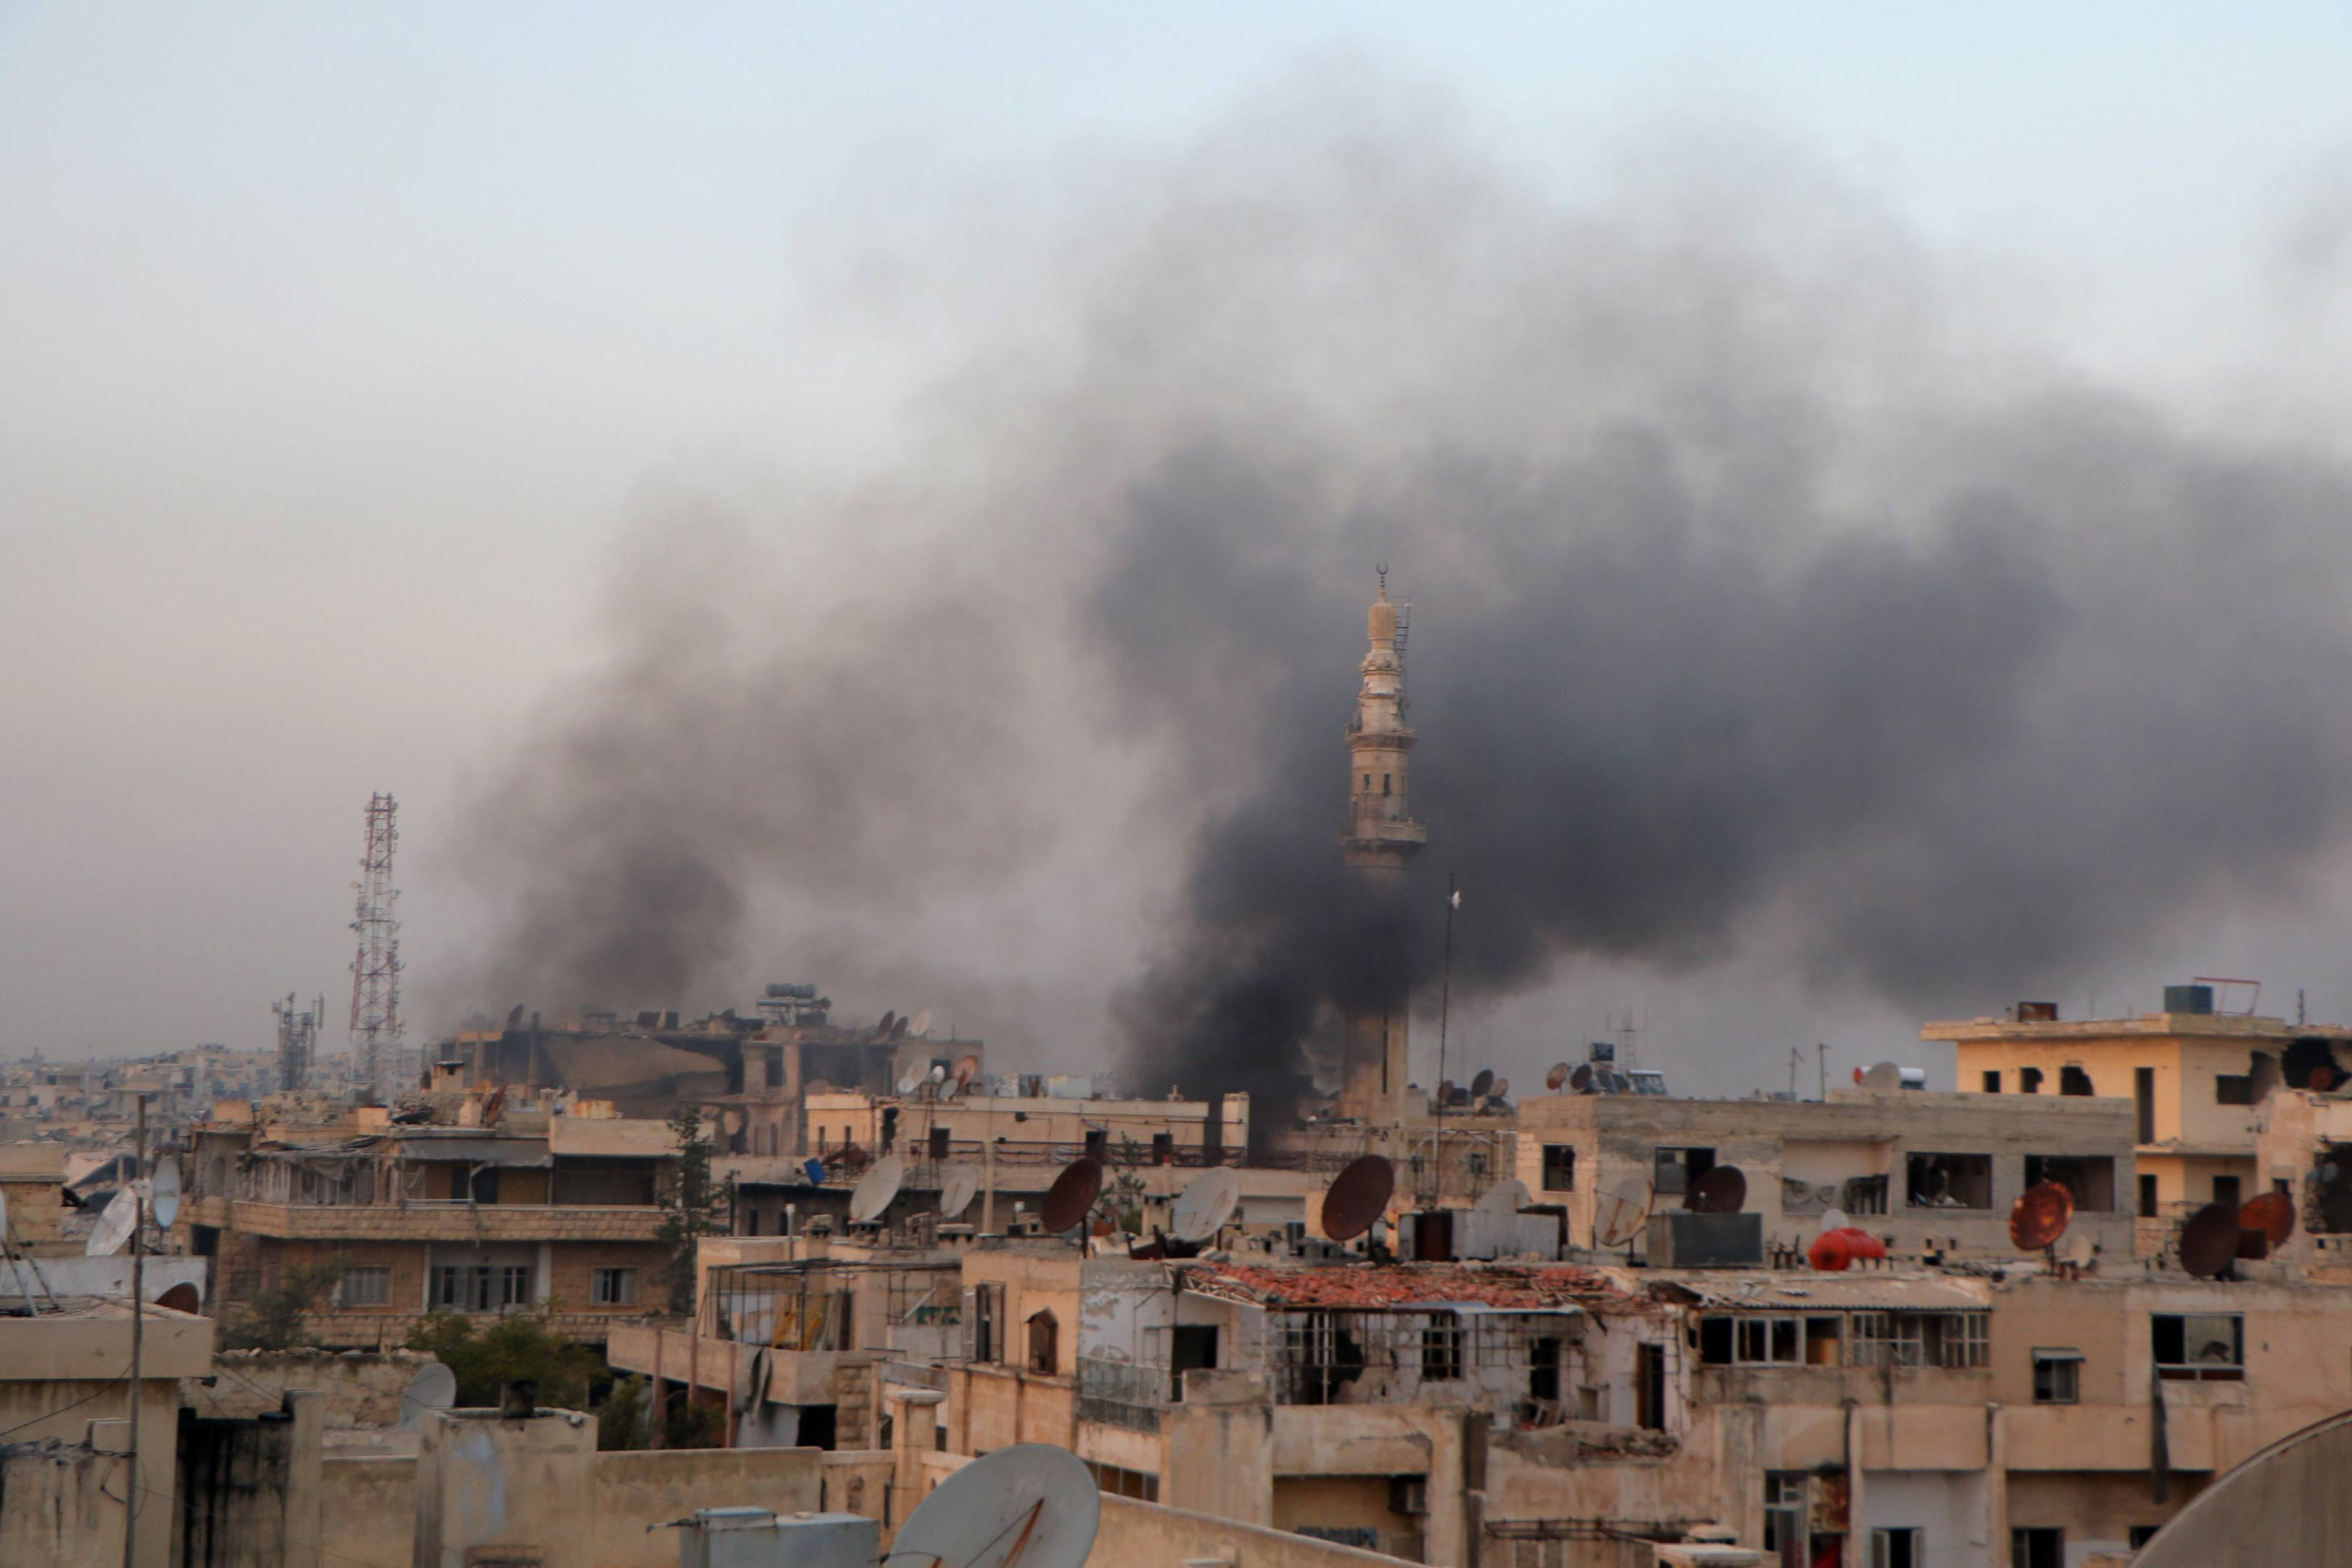 Aleppo And Syria News Is Being Produced By Citizen Journalists But